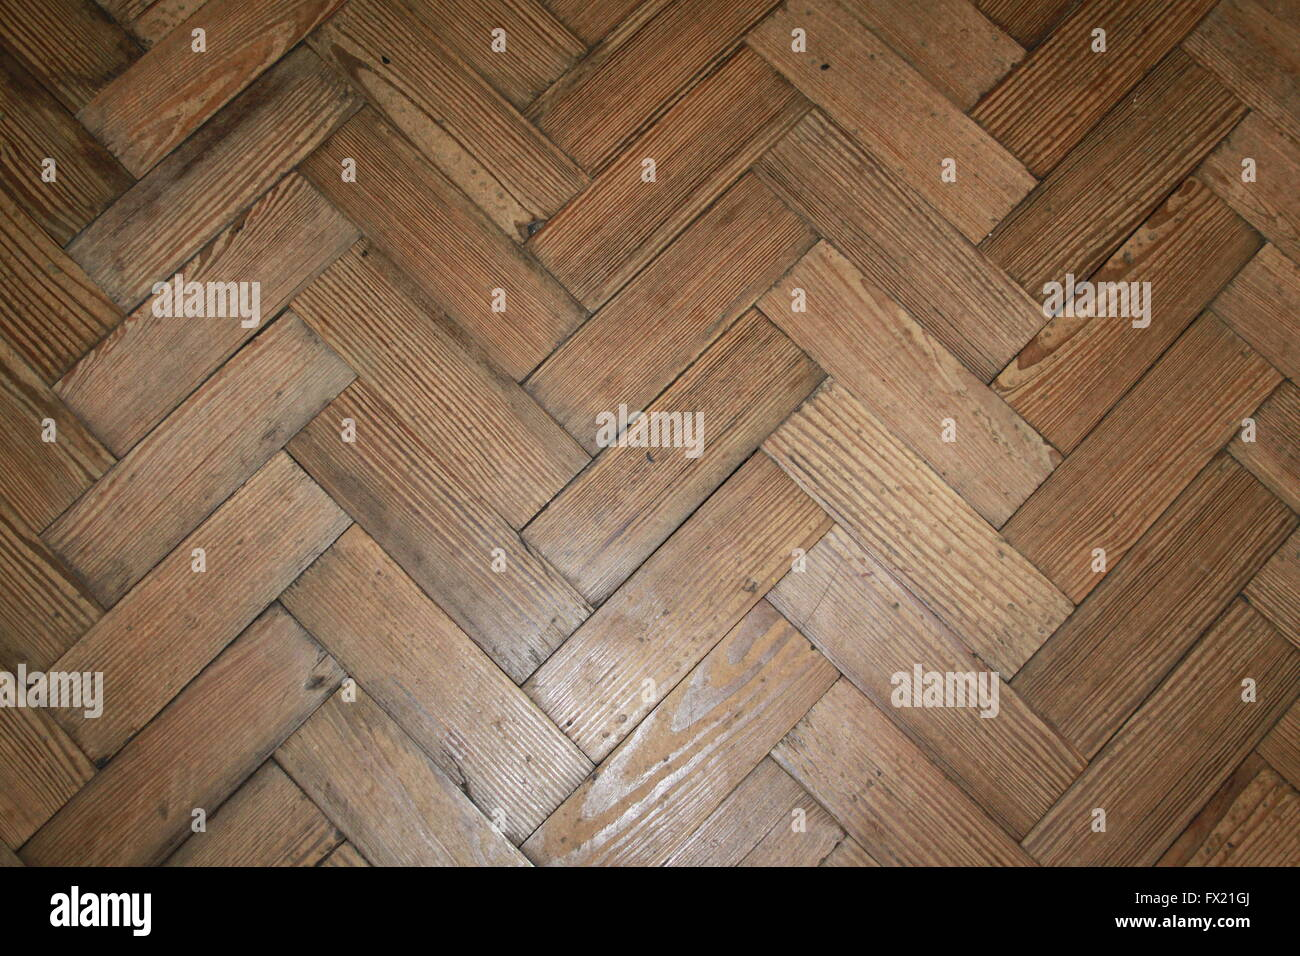 Very Old Wooden Parquet Floor Illustrating The Longevity Of Natural Flooring